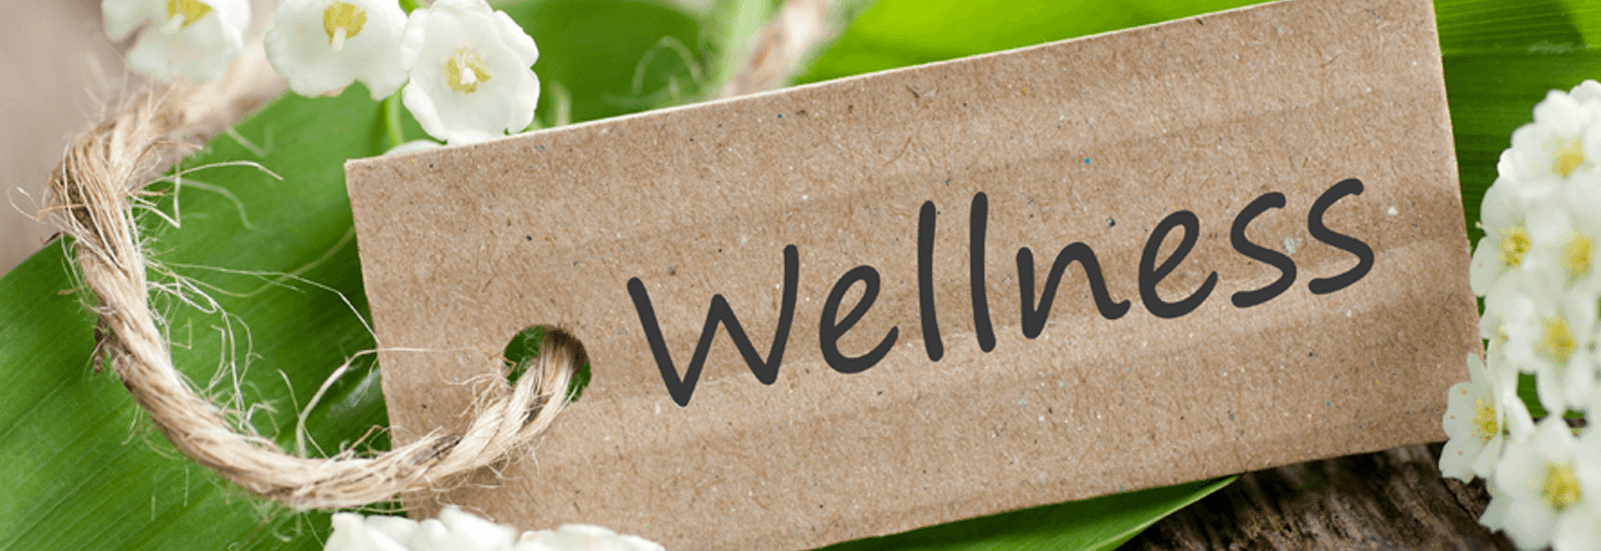 Wellness - Ayurveda/The Science of Life - The Himalaya Drug Company